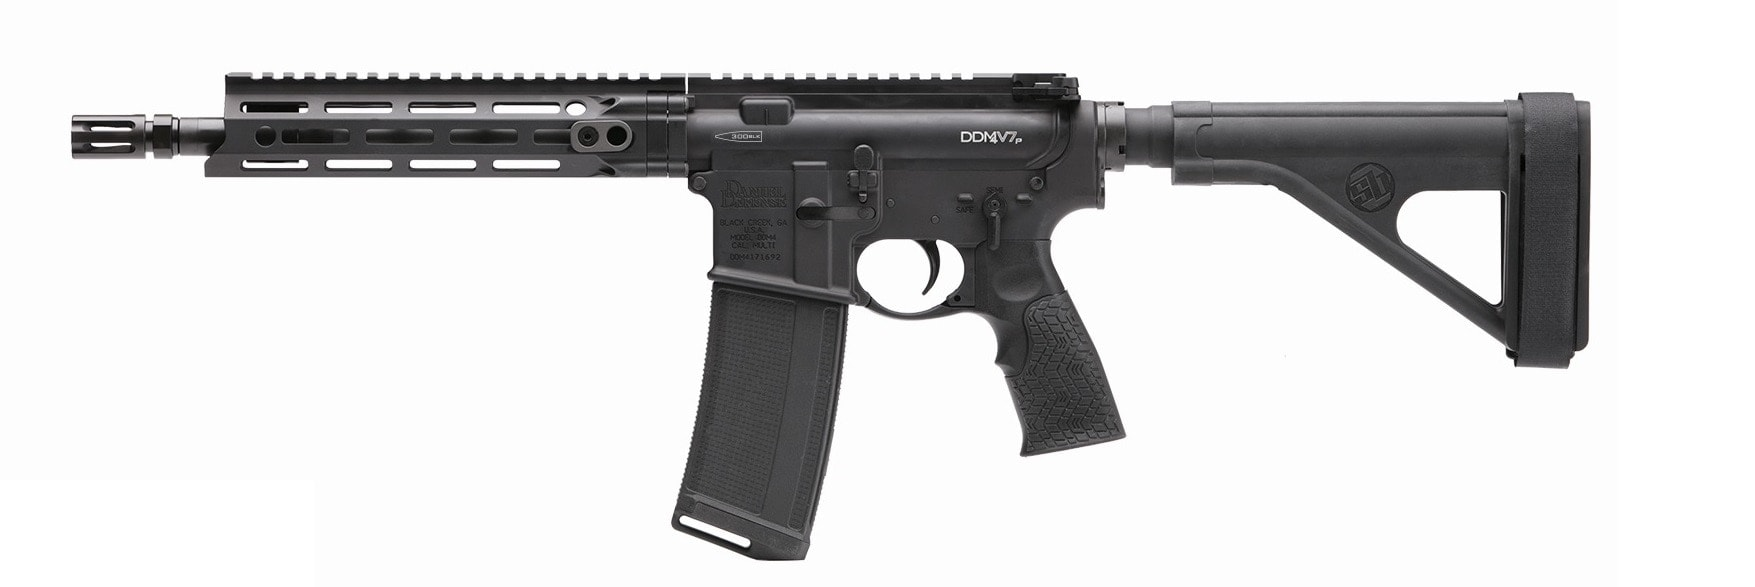 The DDM4V7P is offered in both 5.56mm and .300 Blackout (Photo: Daniel Defense)